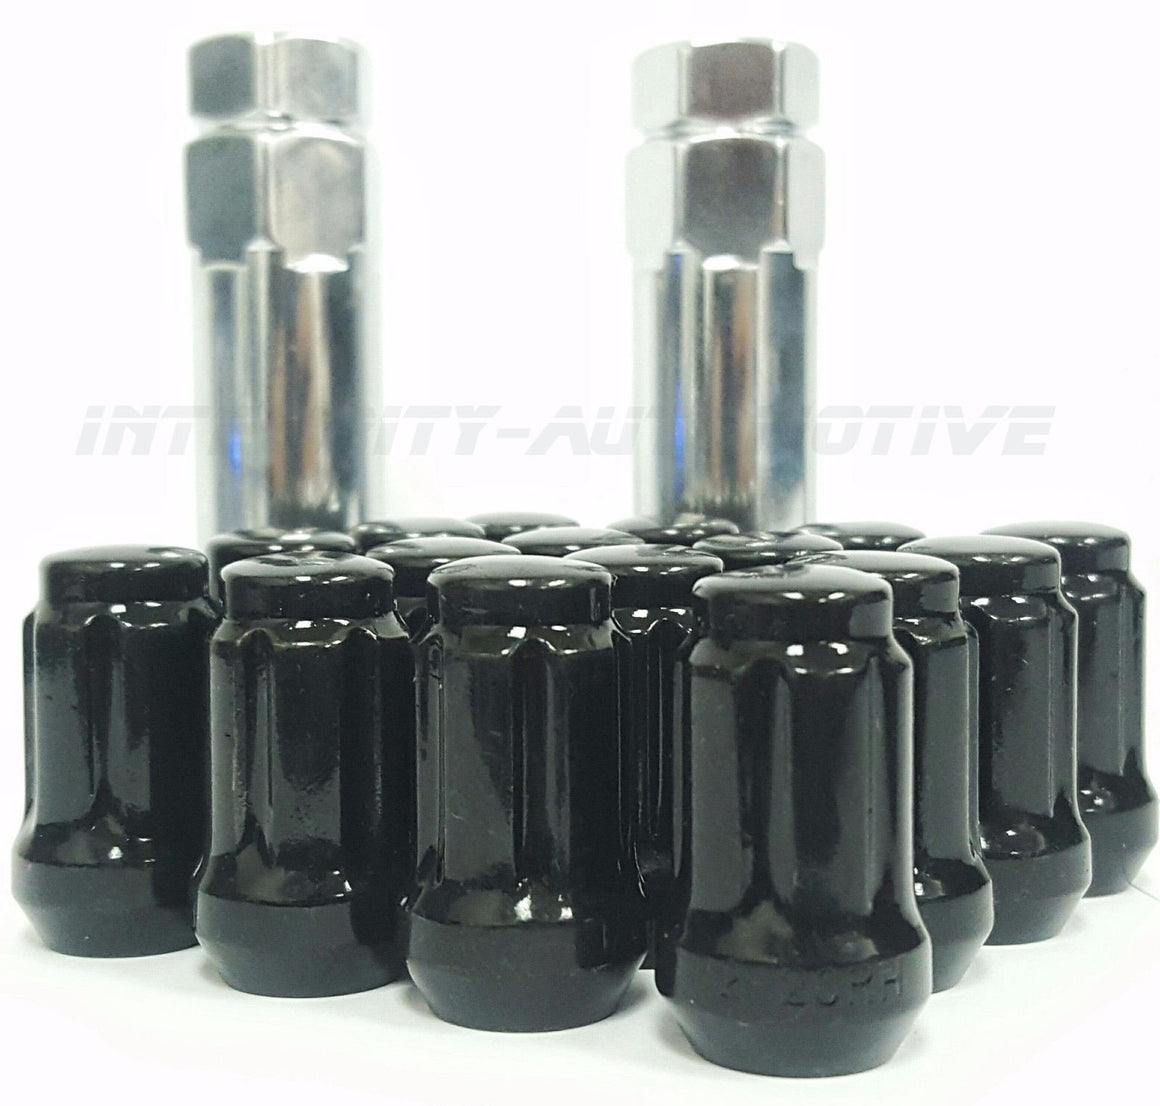 20 Black Spline Tuner Racing Lug Nuts 12x1.25 Fits All Nissan / Infiniti Cars 350z, 370z, 240sx, GTR, G35, G37 etc...